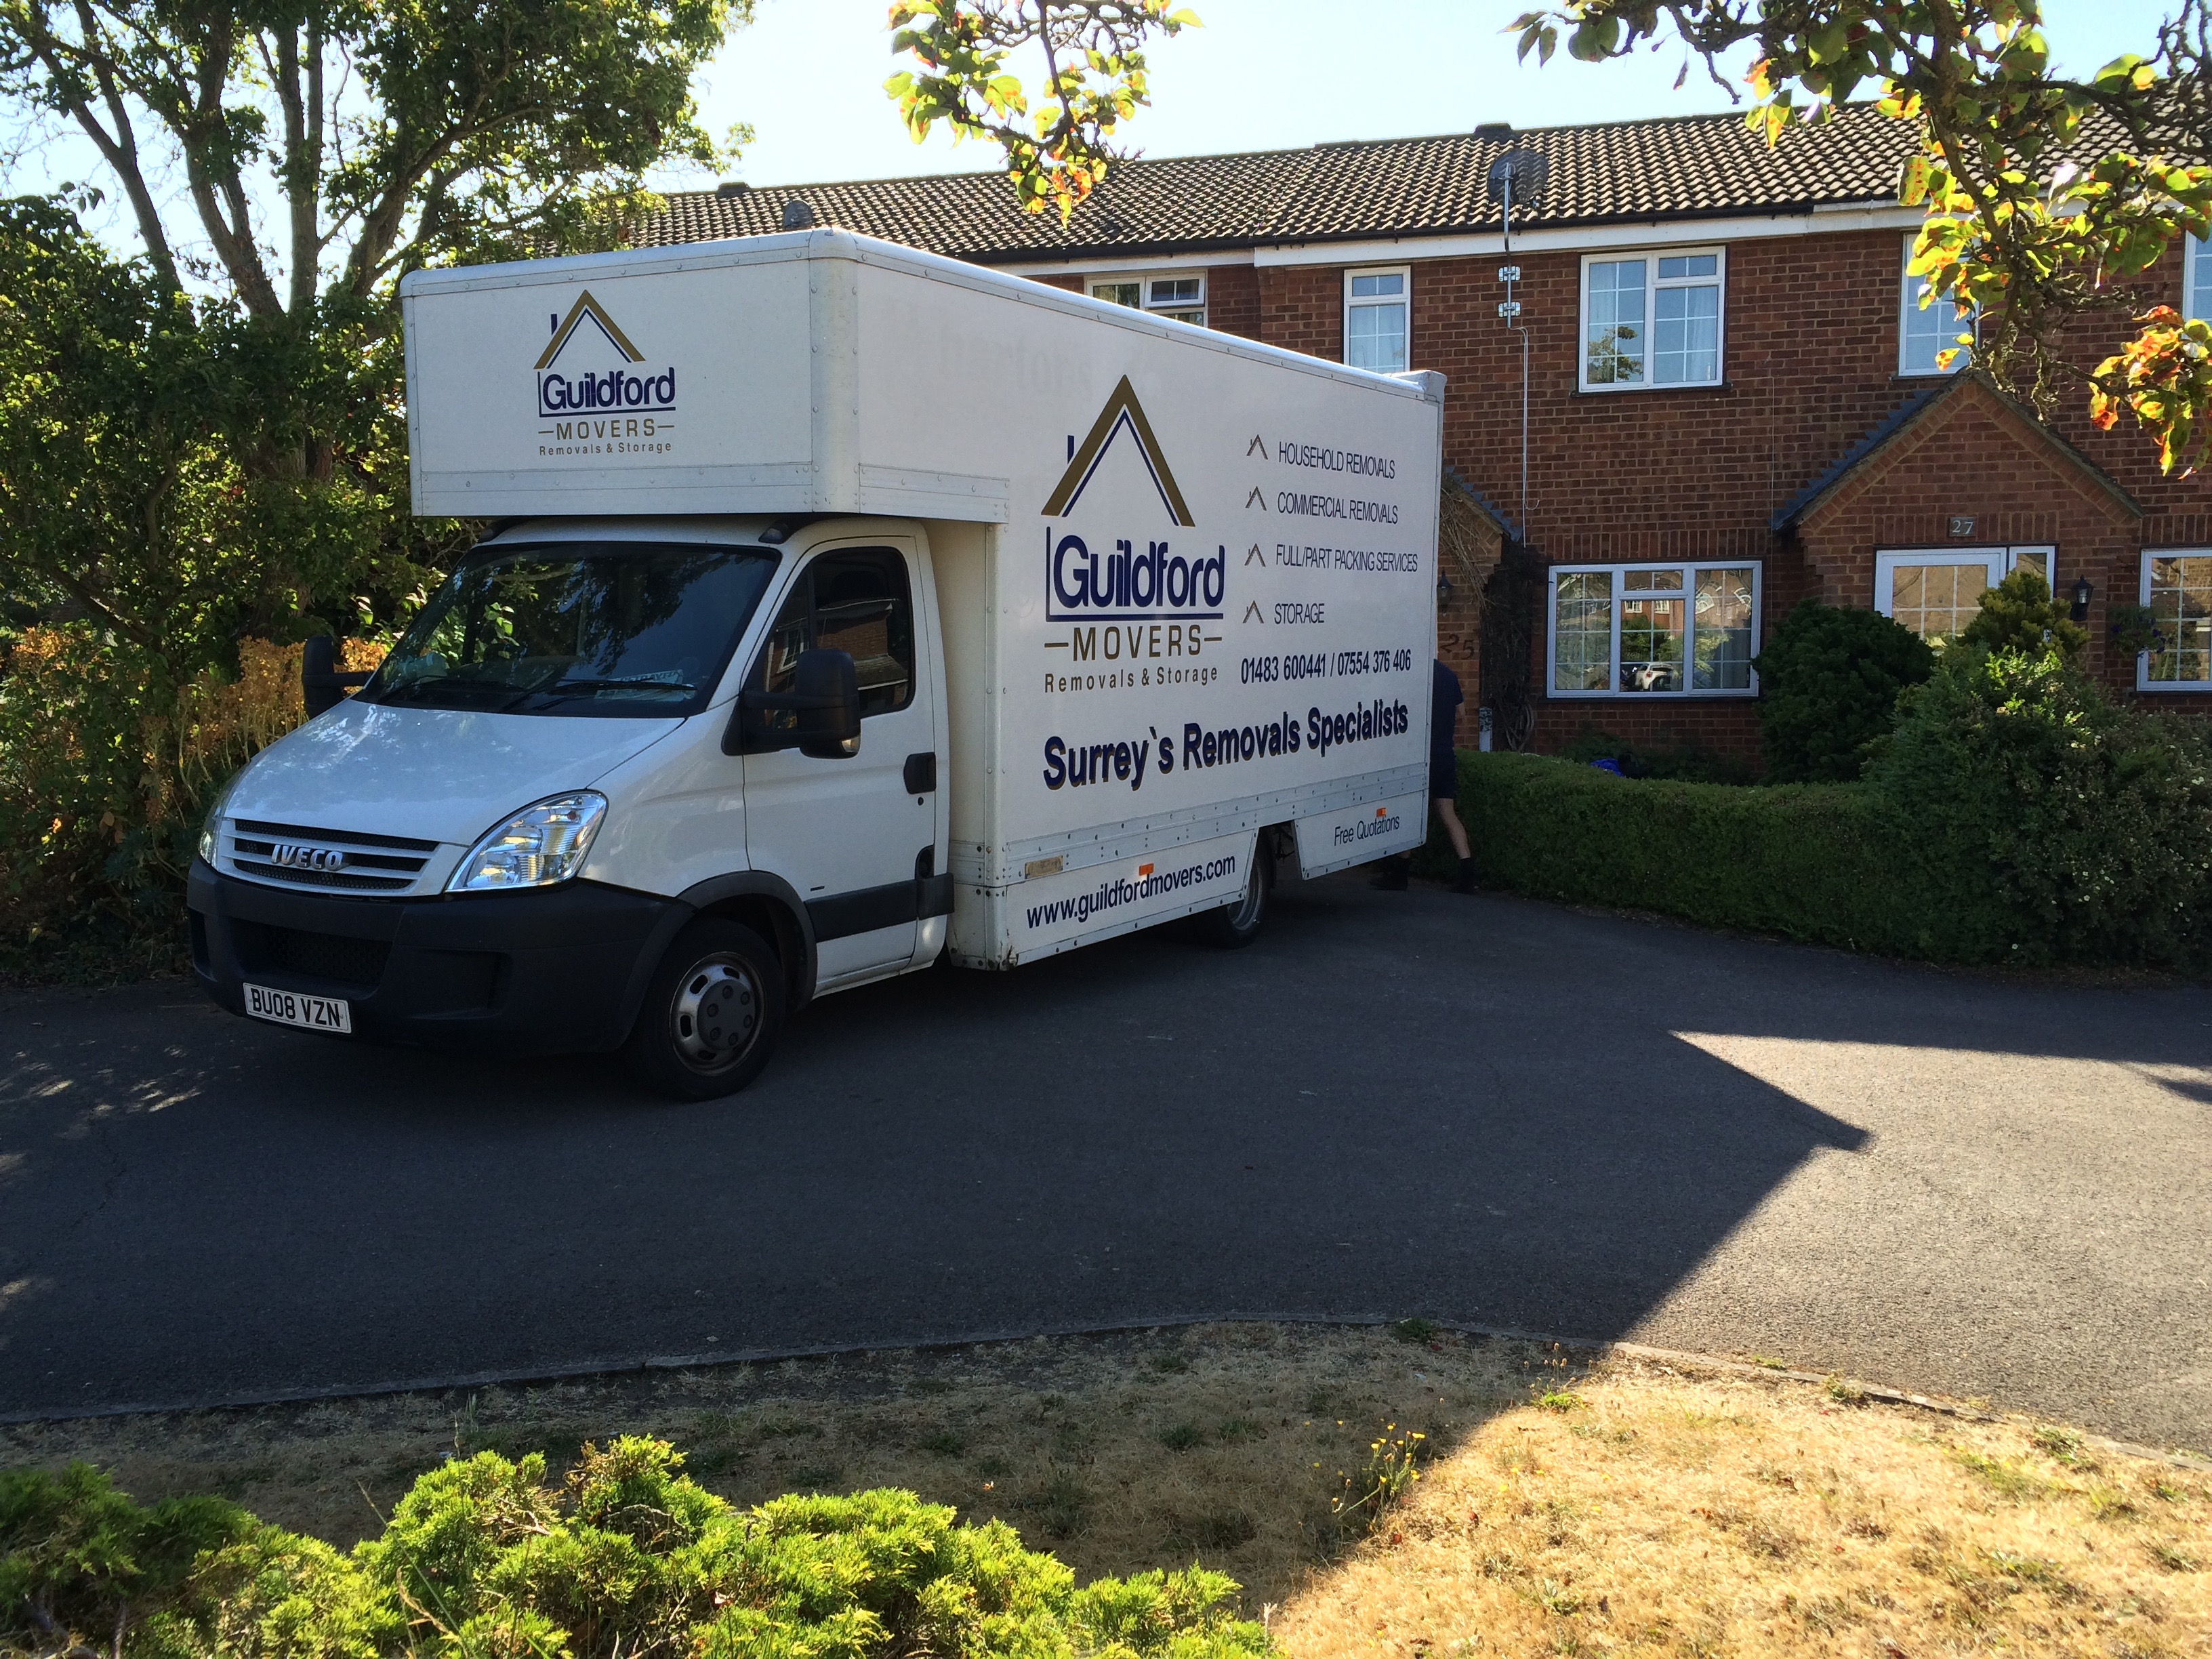 guildford movers home moves